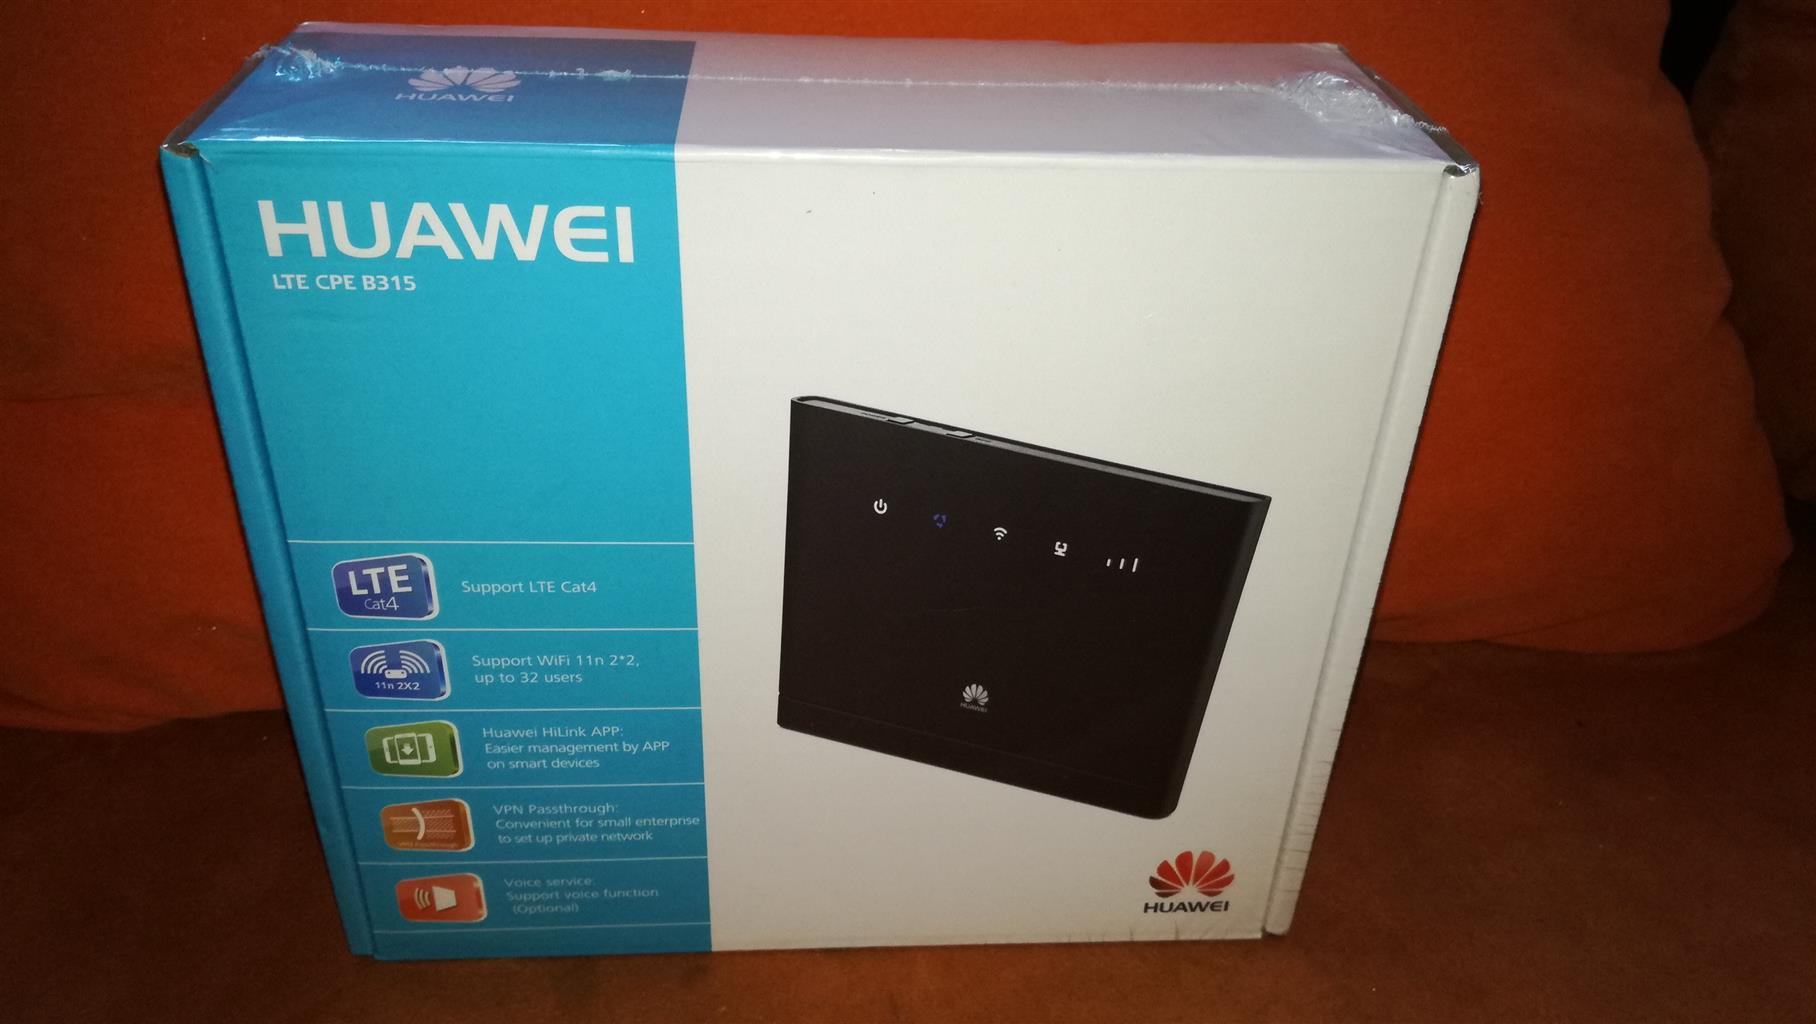 Brand New Huawei B315s 936 4g Lte Wi Fi Router Junk Mail B315 150mbps Home Modem Wifi Wireless Hotspot